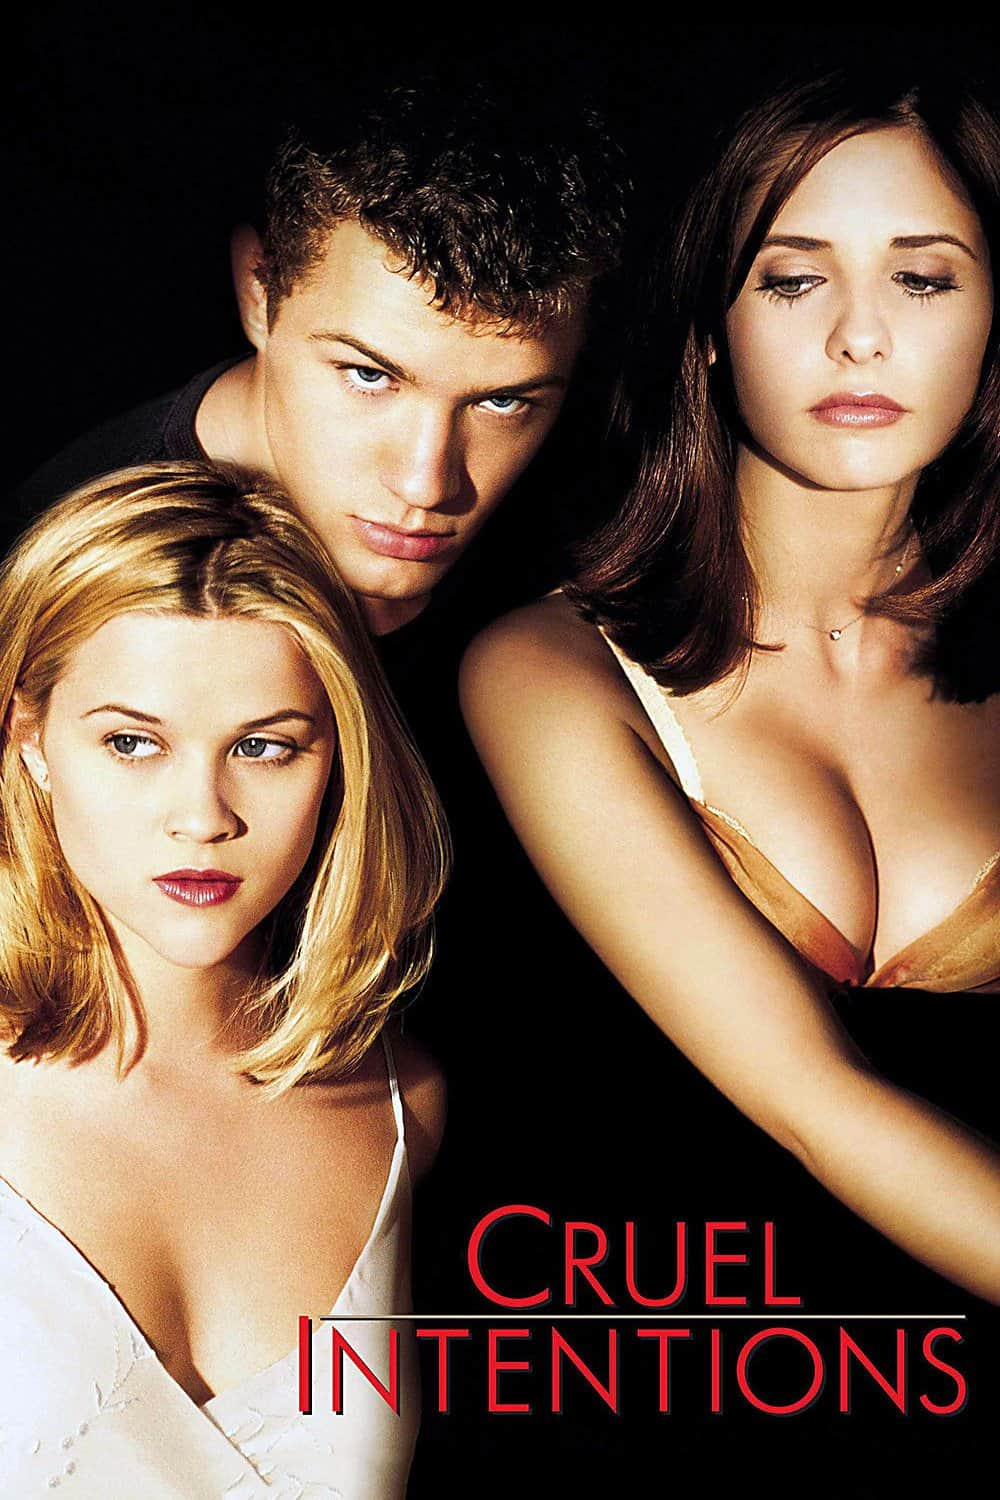 Cruel Intentions, 1999